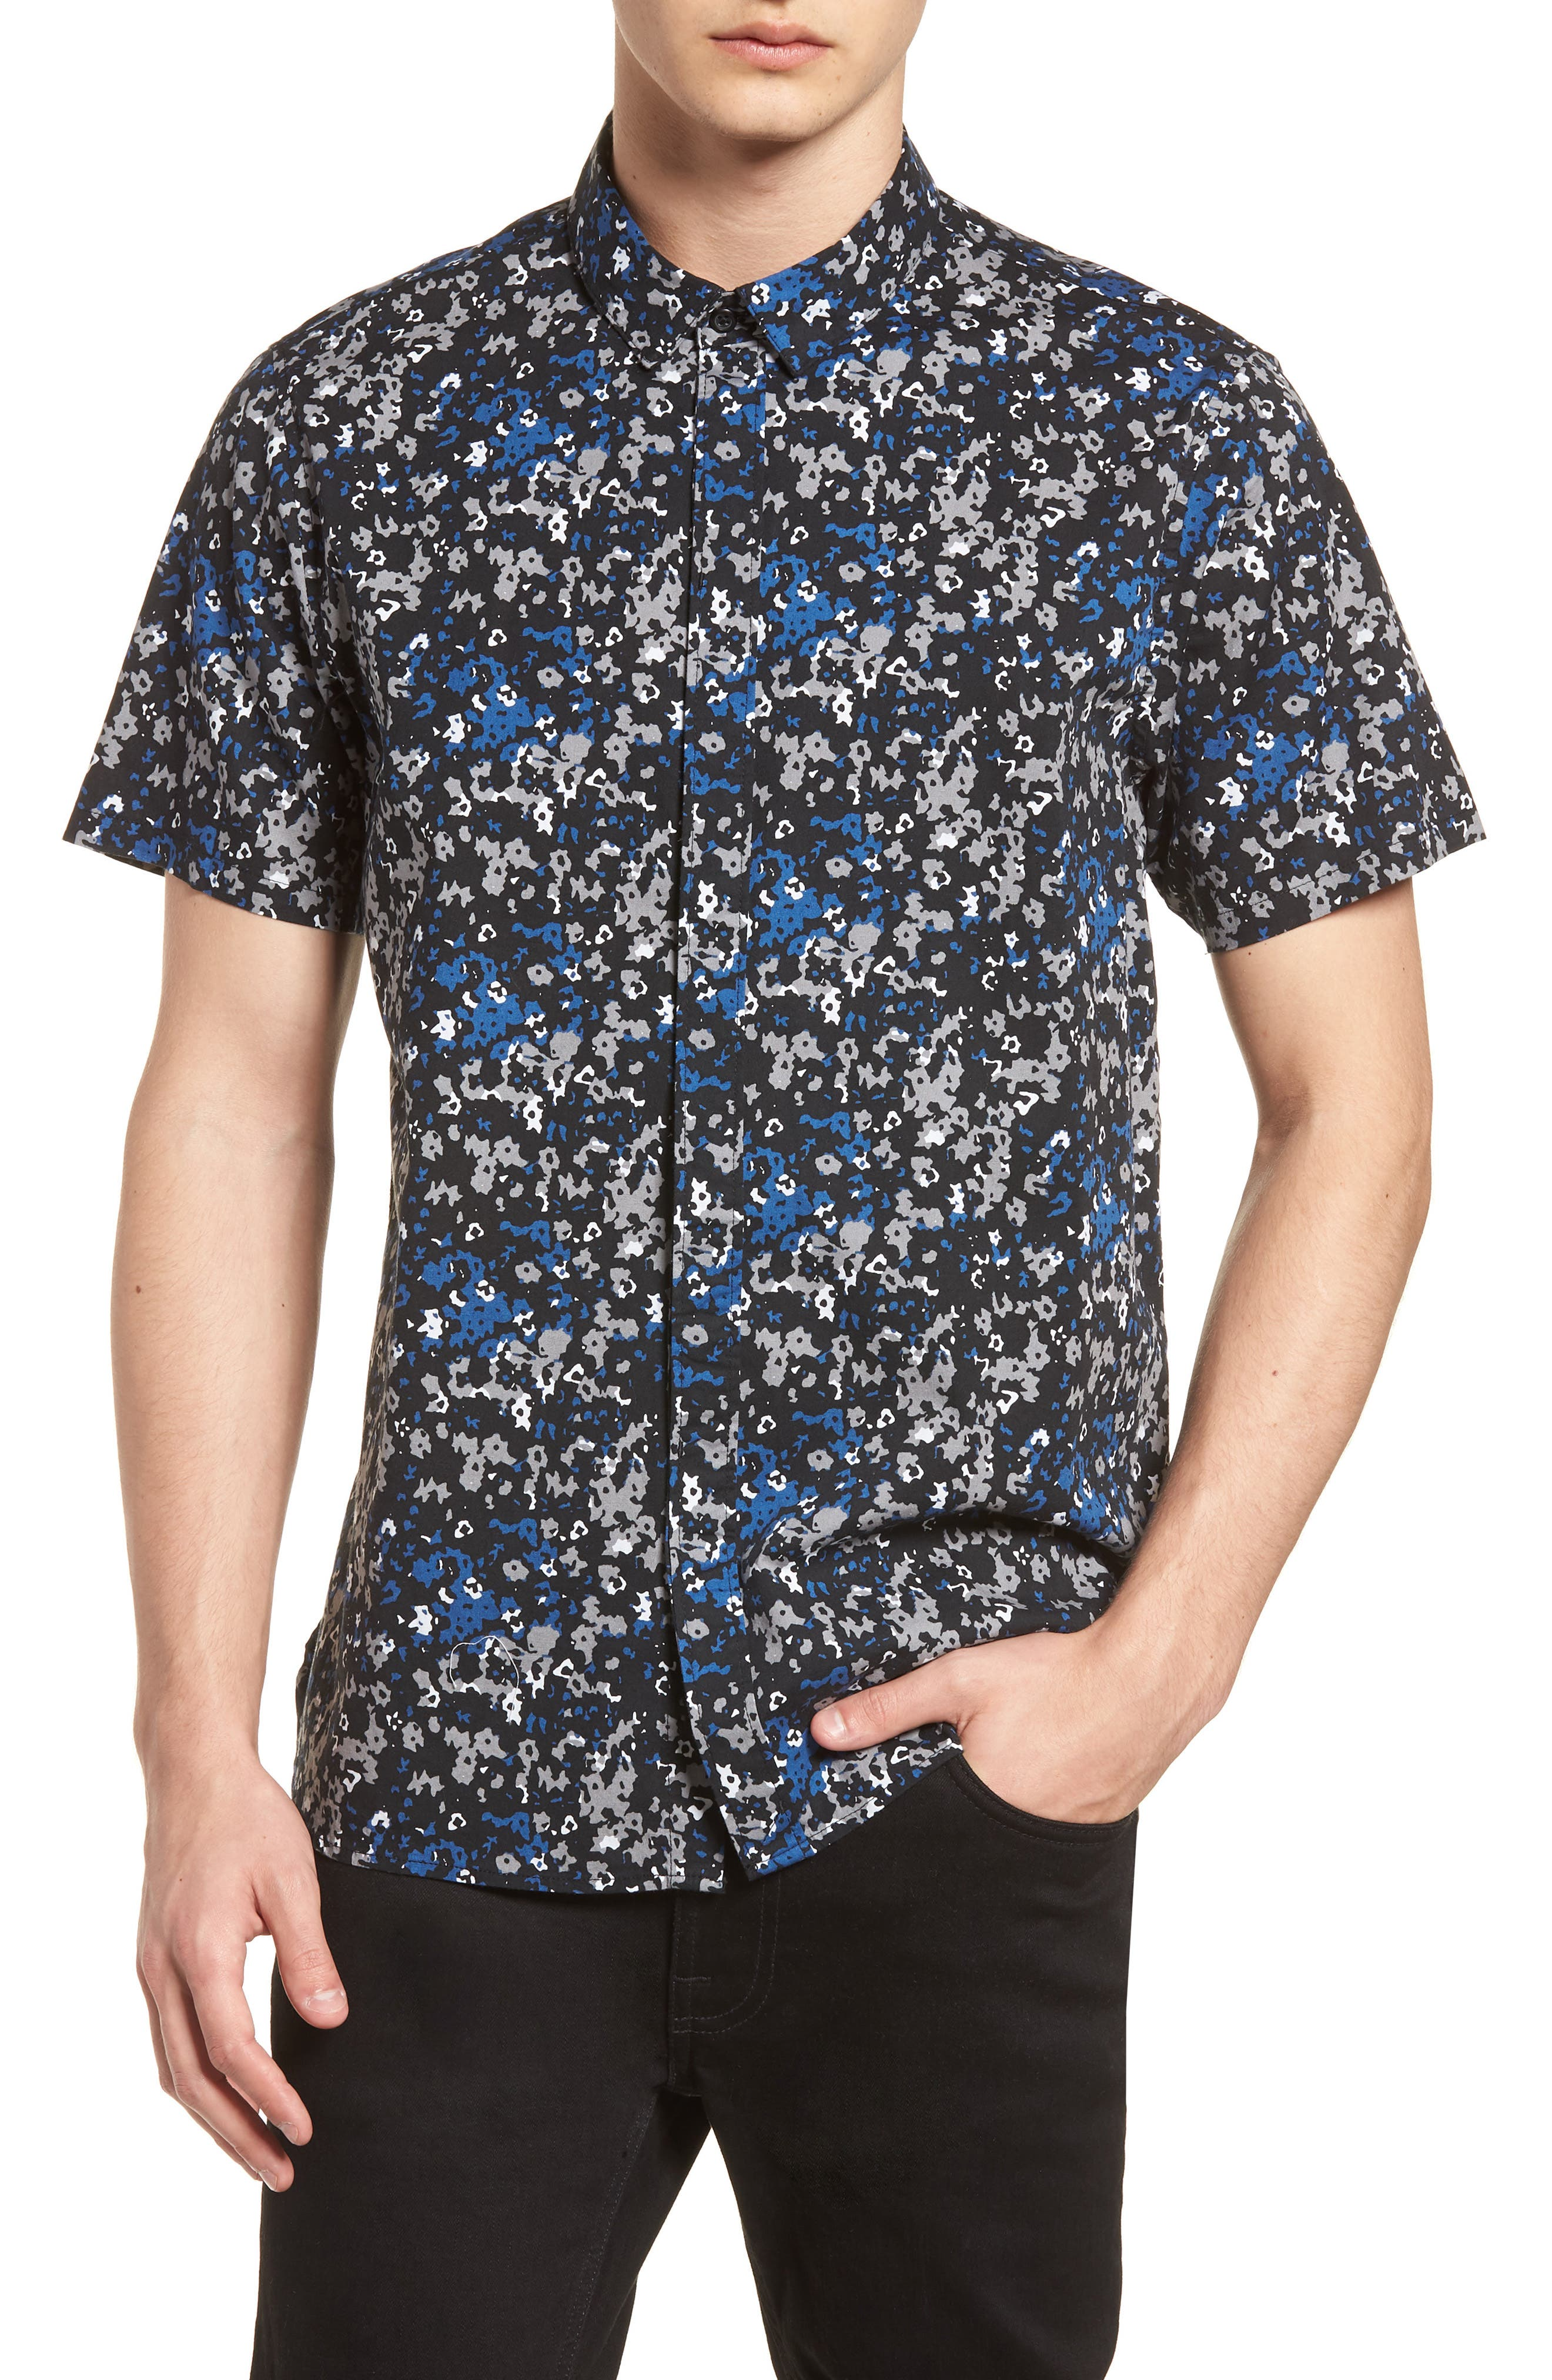 Fowler Woven Shirt,                         Main,                         color, Black Micro Floral